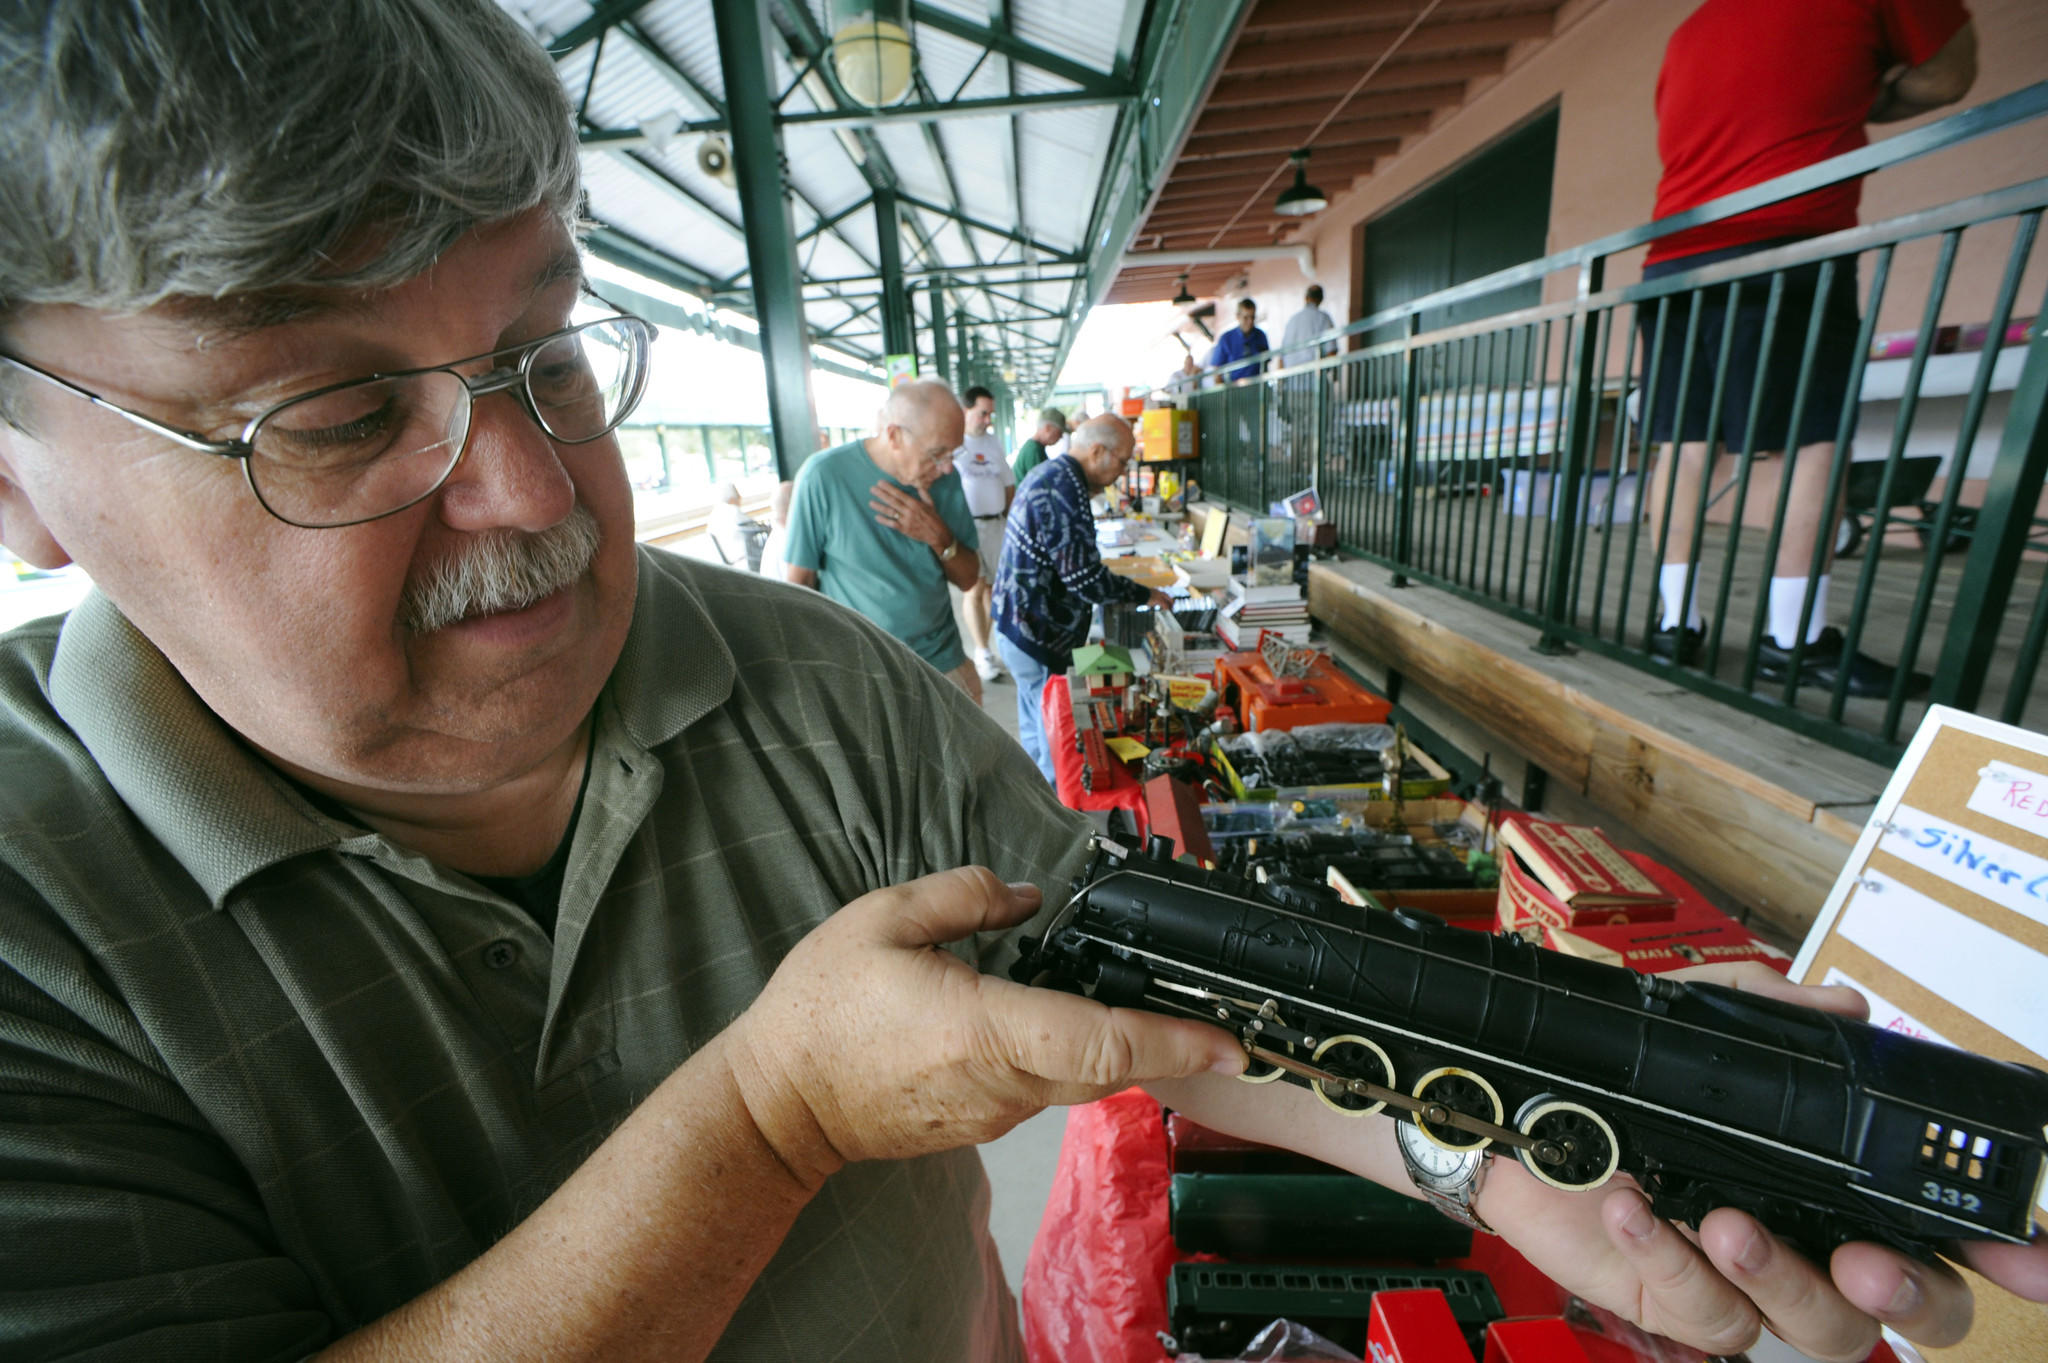 John Childrey shows displays his prized American Flyer 332 Challenger steam locomotive model at Saturday's South Florida Railway Museum swap meet held at the train station in Deerfield Beach.